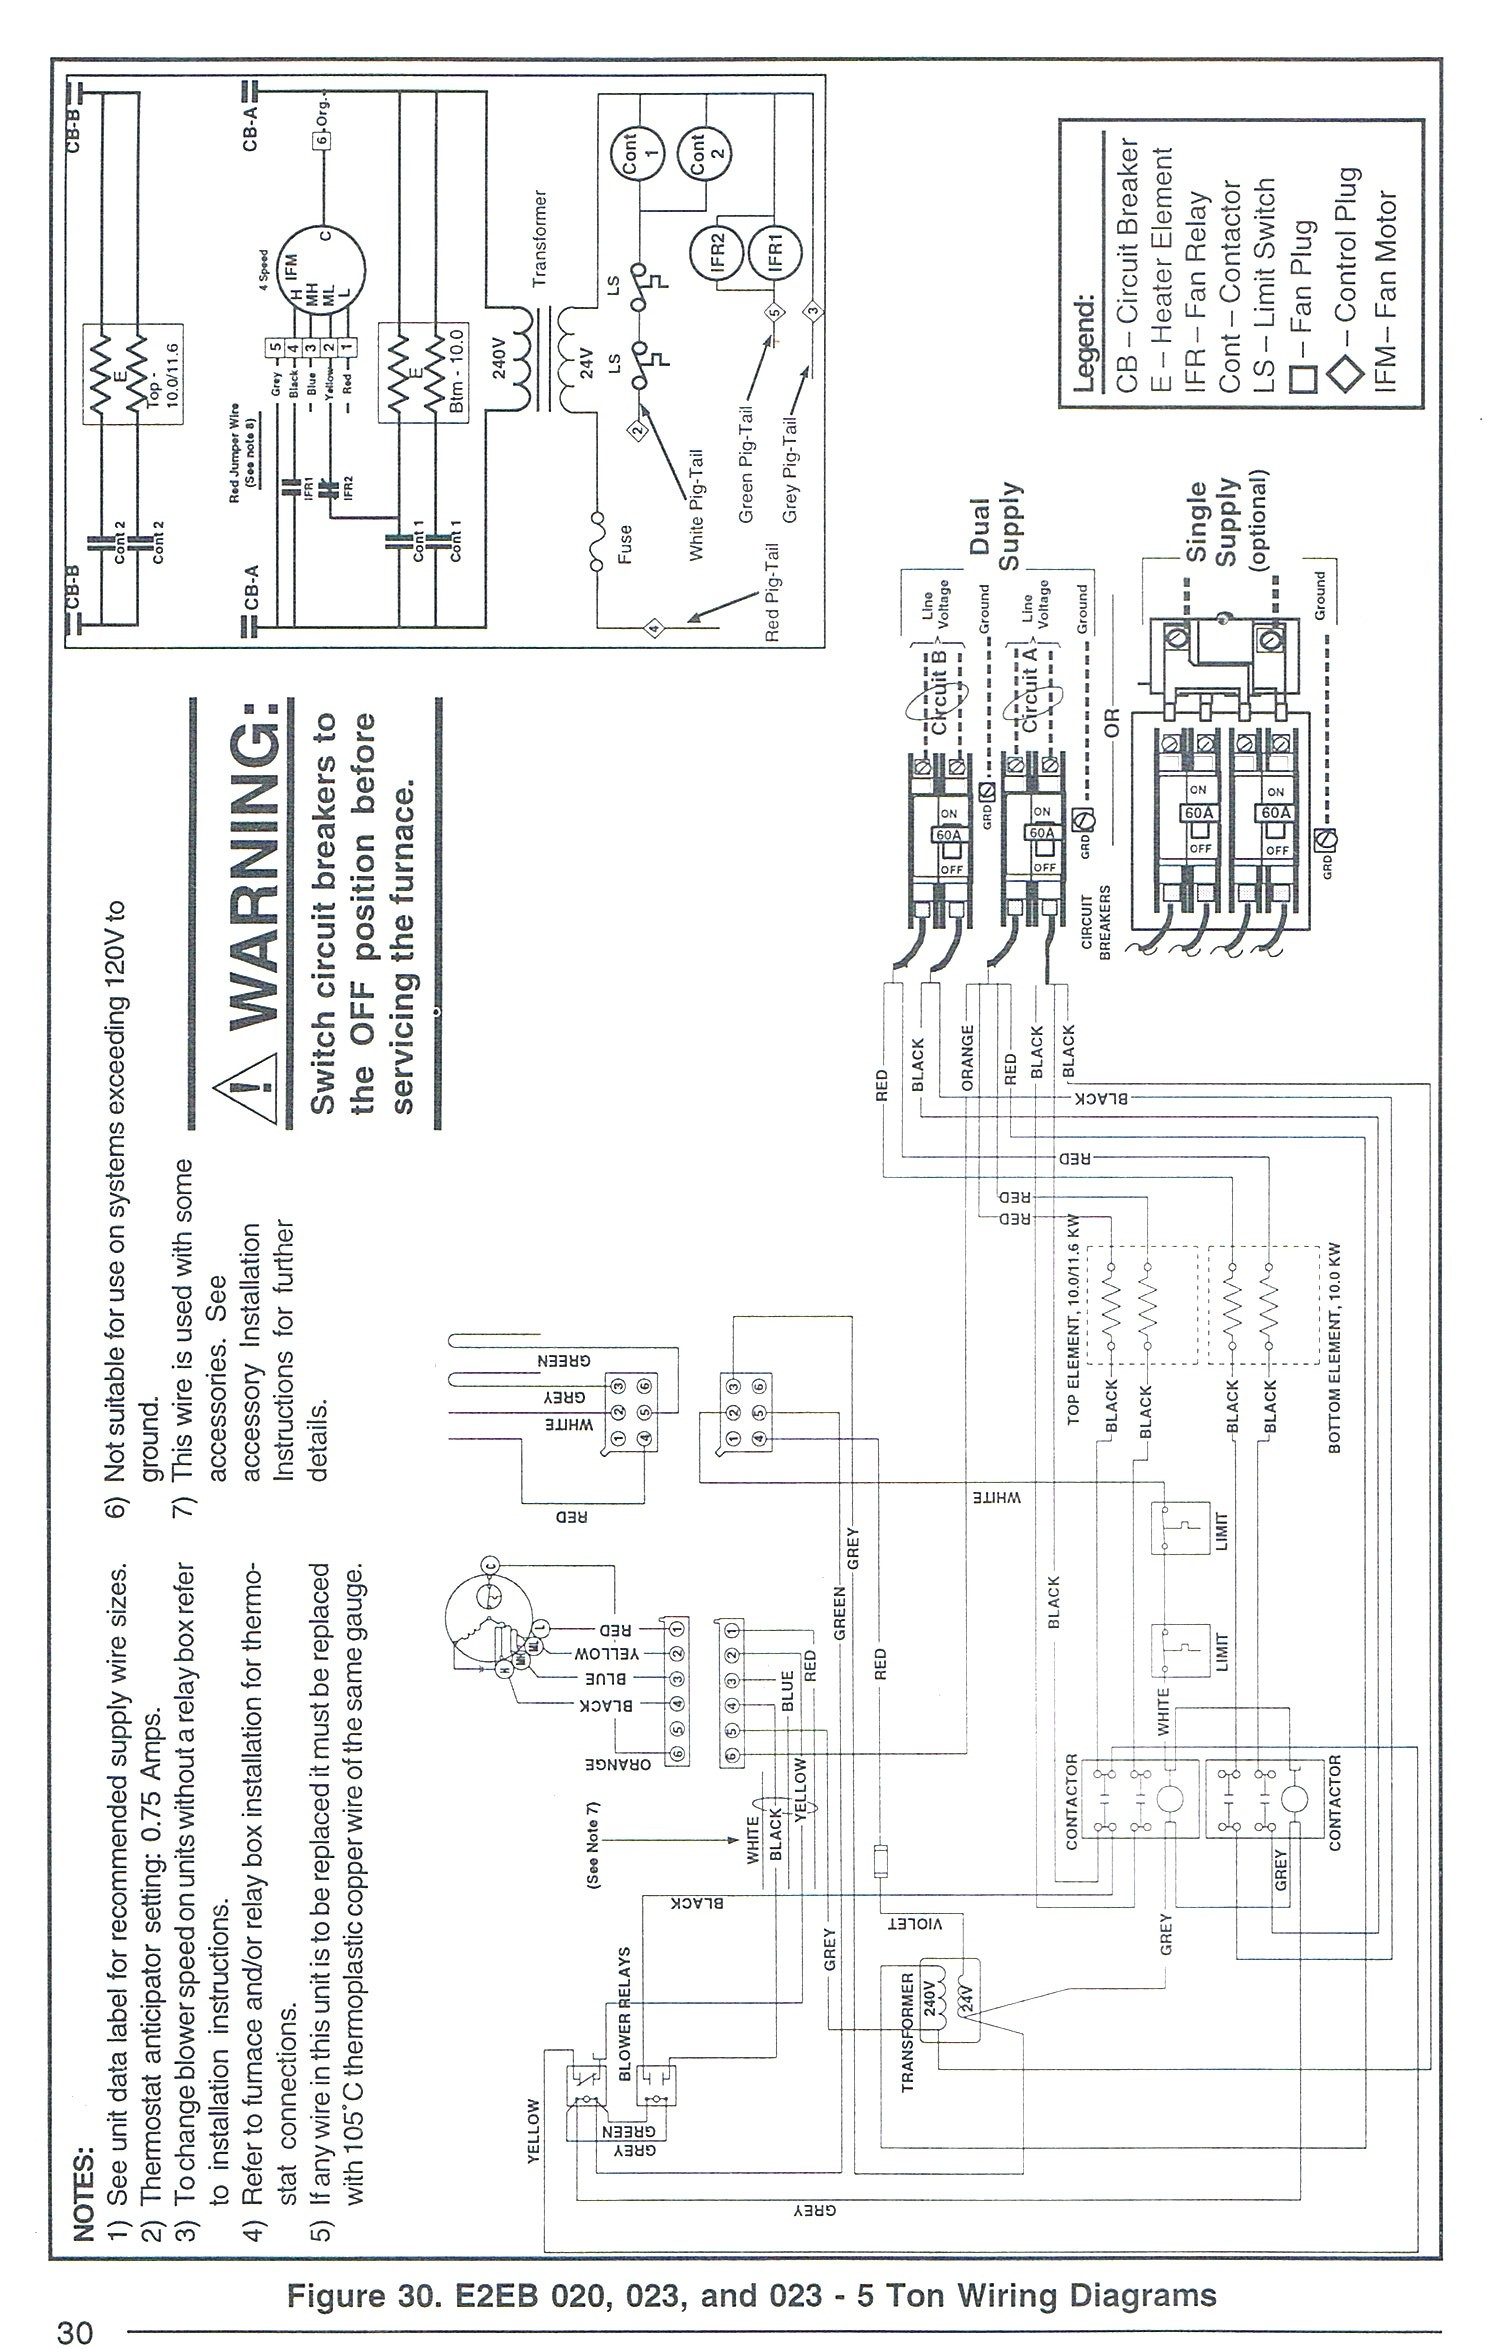 Wiring Database 2020  29 E2eb 012ha Wiring Diagram